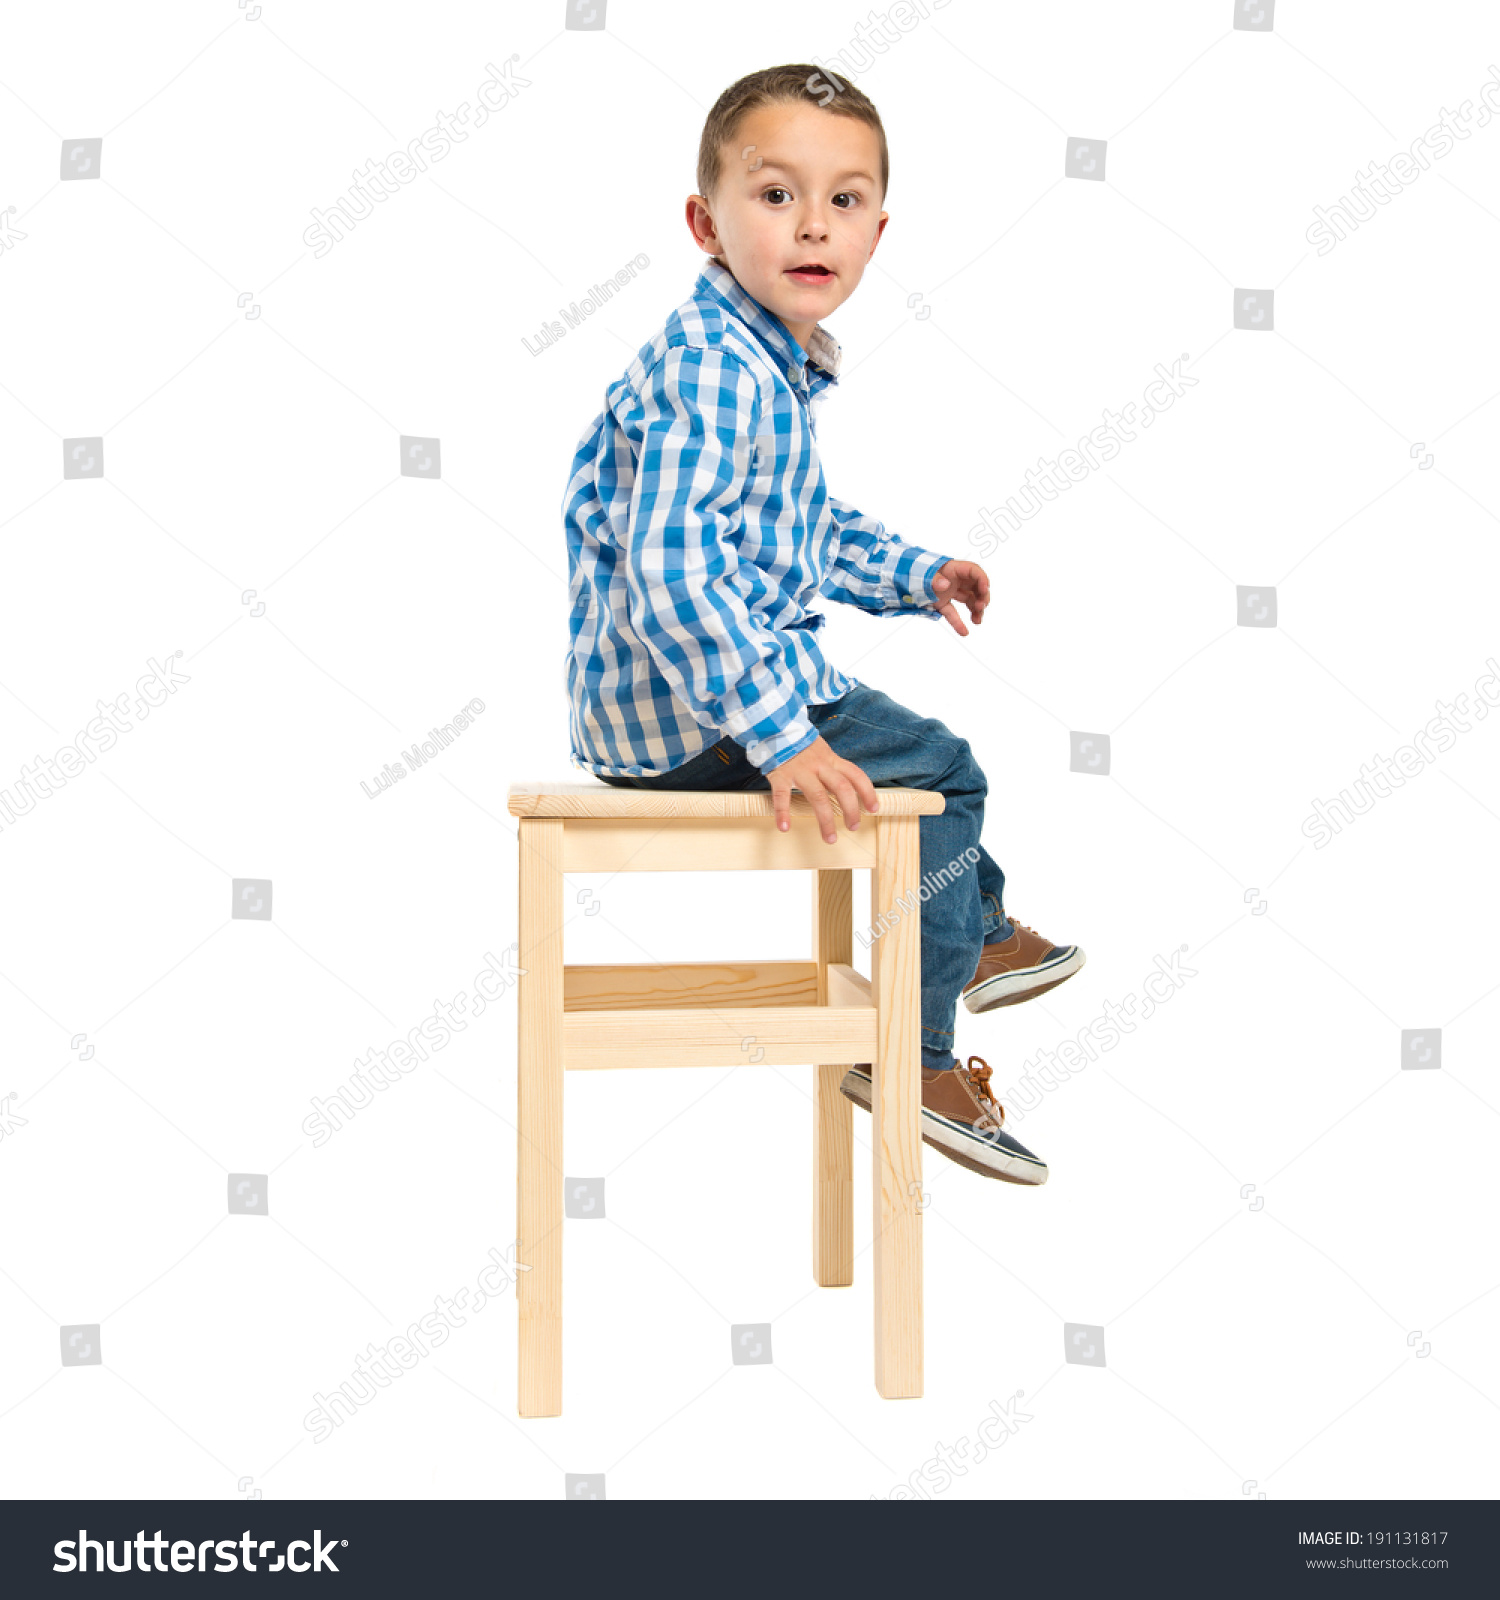 Surprised kid sitting on wooden chair stock photo for Toddler sitting chair